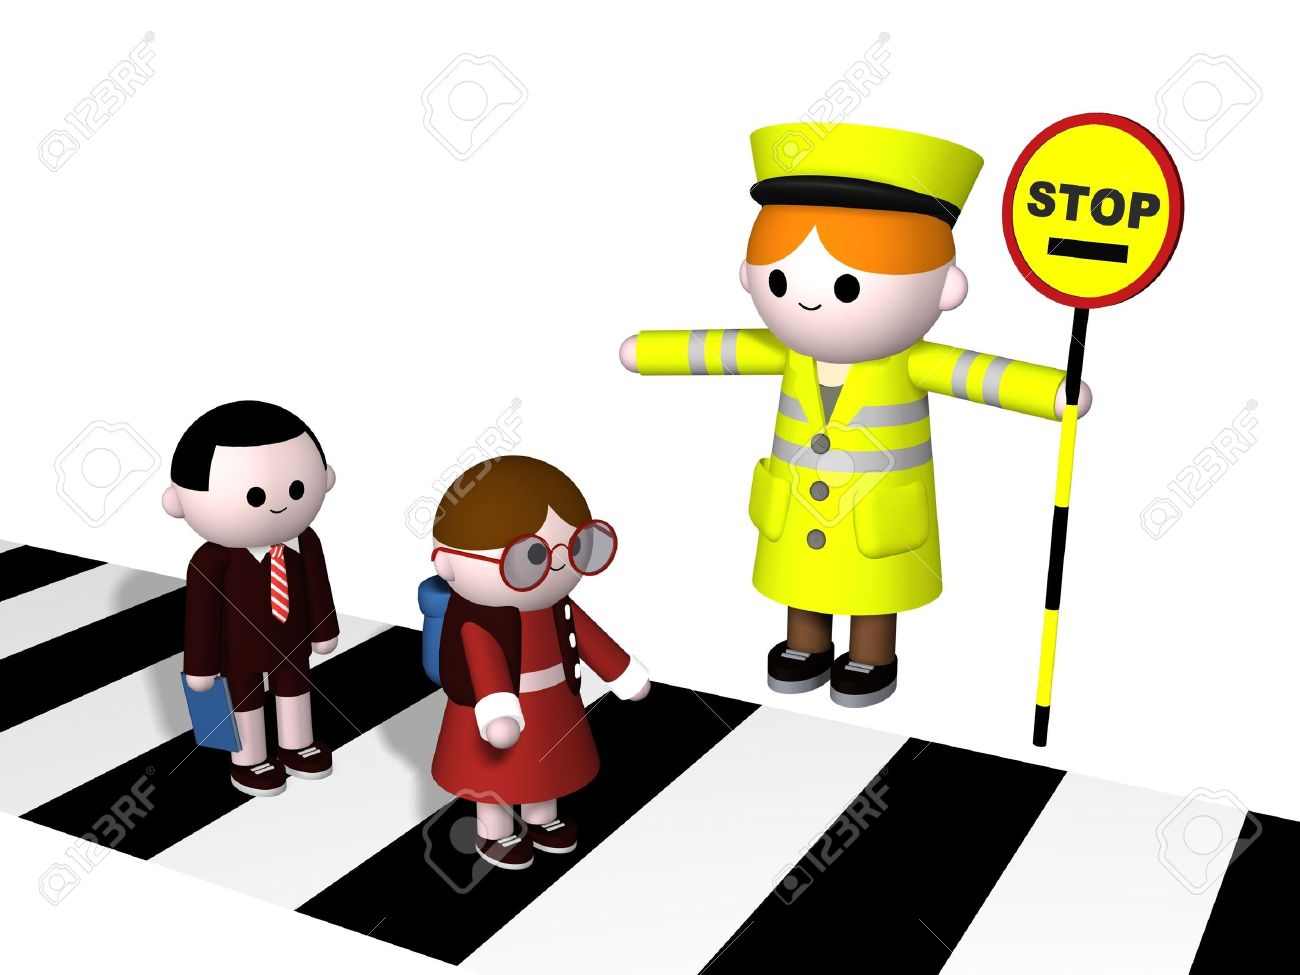 3024410-3D-illustration-of-a-lollipop-Lady-guiding-two-children-across-a-zebra-crossing-Stock-Illustration